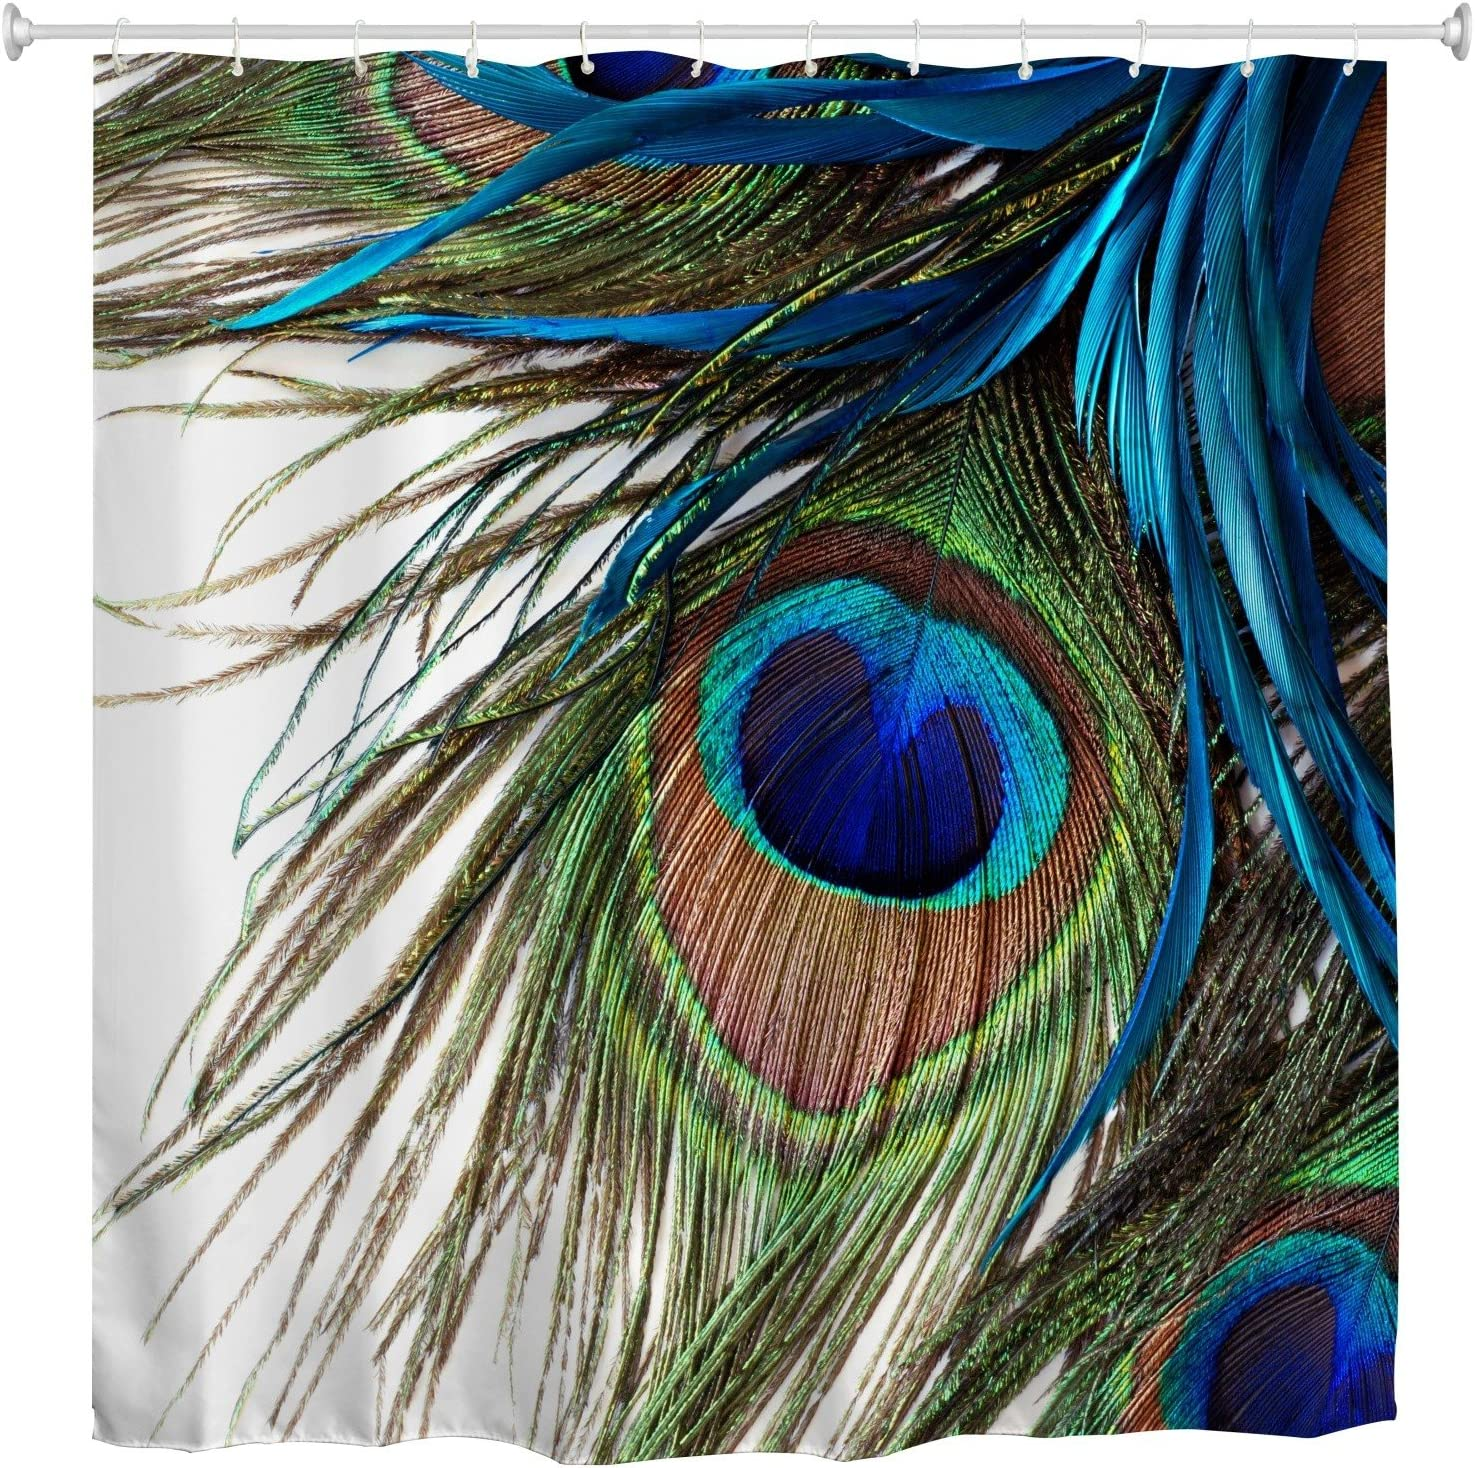 Goodbath Peacock Shower Curtain,Peacock Feather Eye Waterproof Fabric Bathroom Shower Curtains,72 x 72 Inch, Colorful